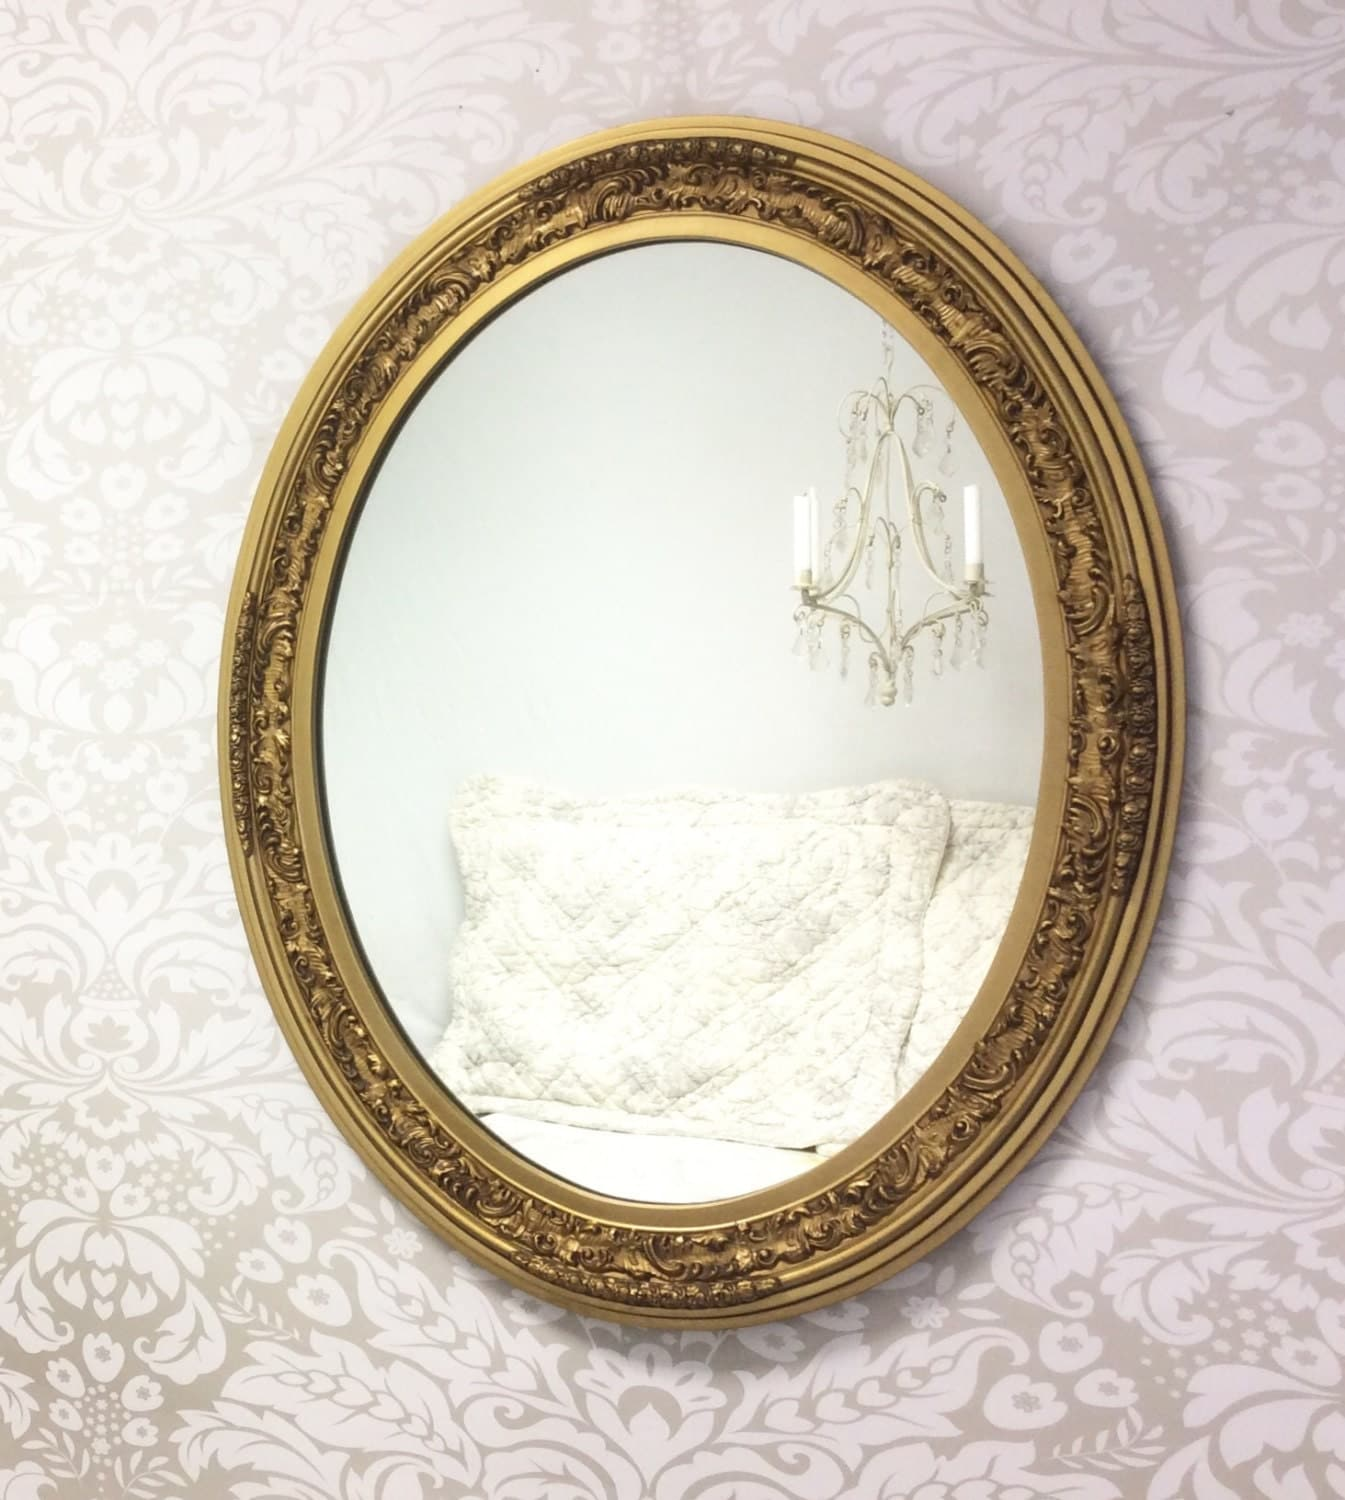 Decorative vintage mirror for sale large oval gold mirror Large wooden mirrors for sale